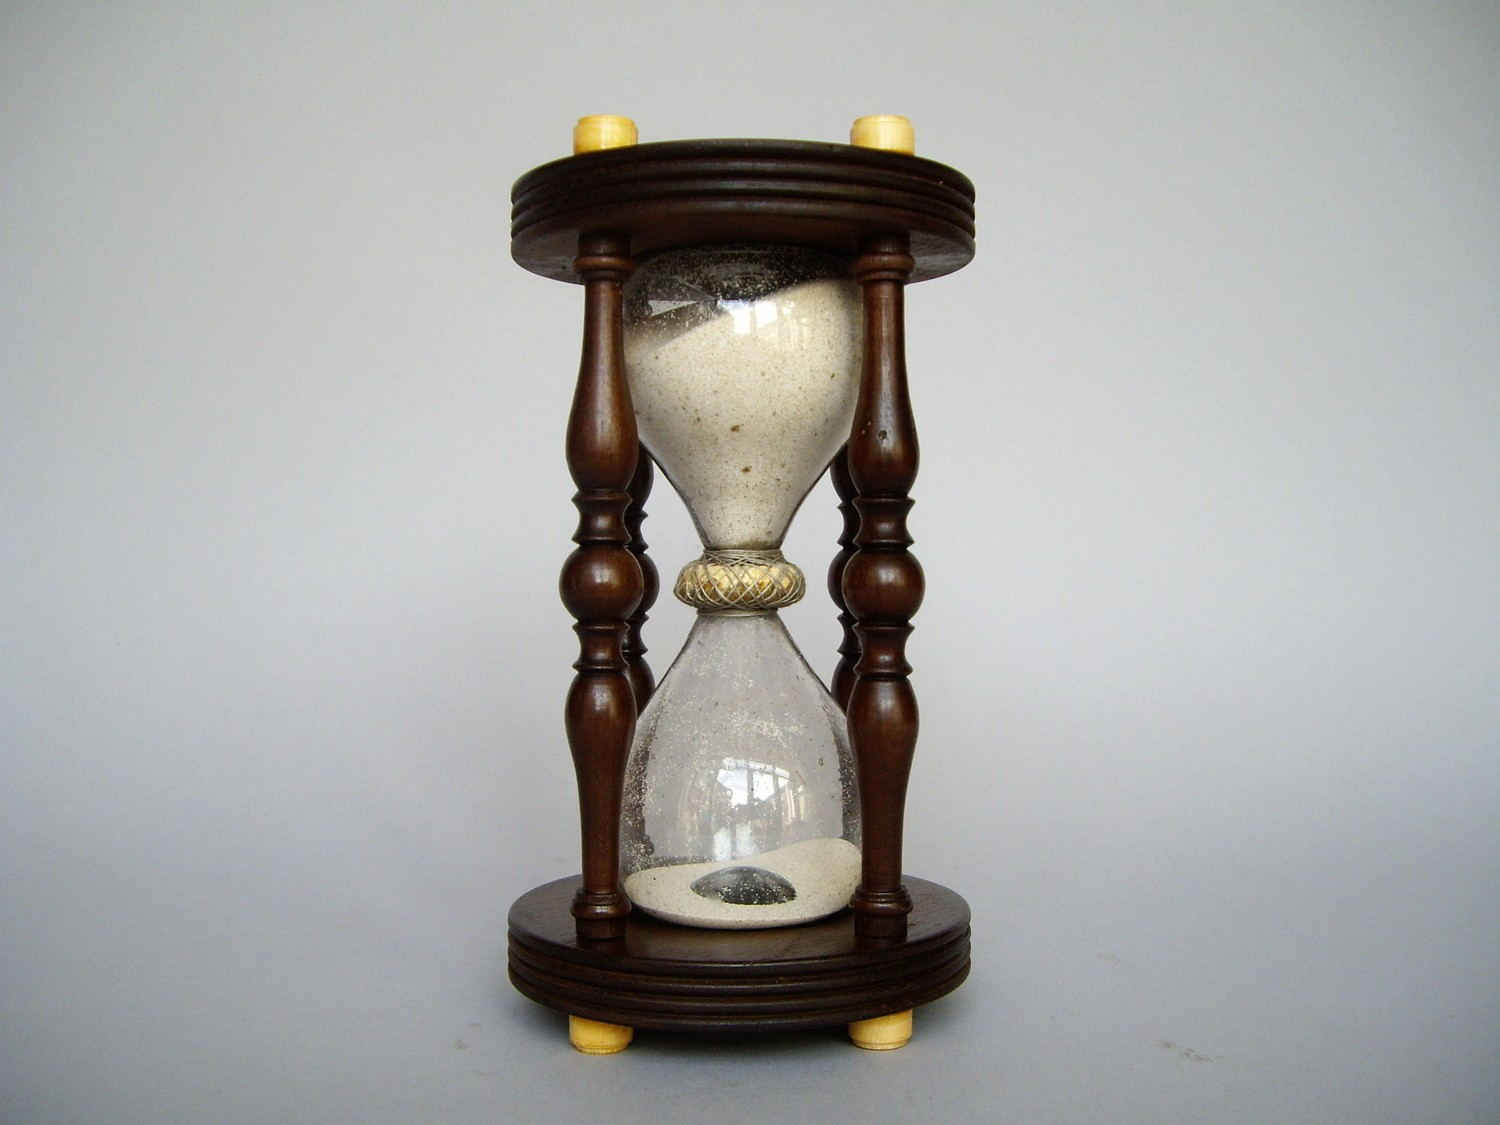 ANTIQUE 18TH CENTURY HOURGLASS